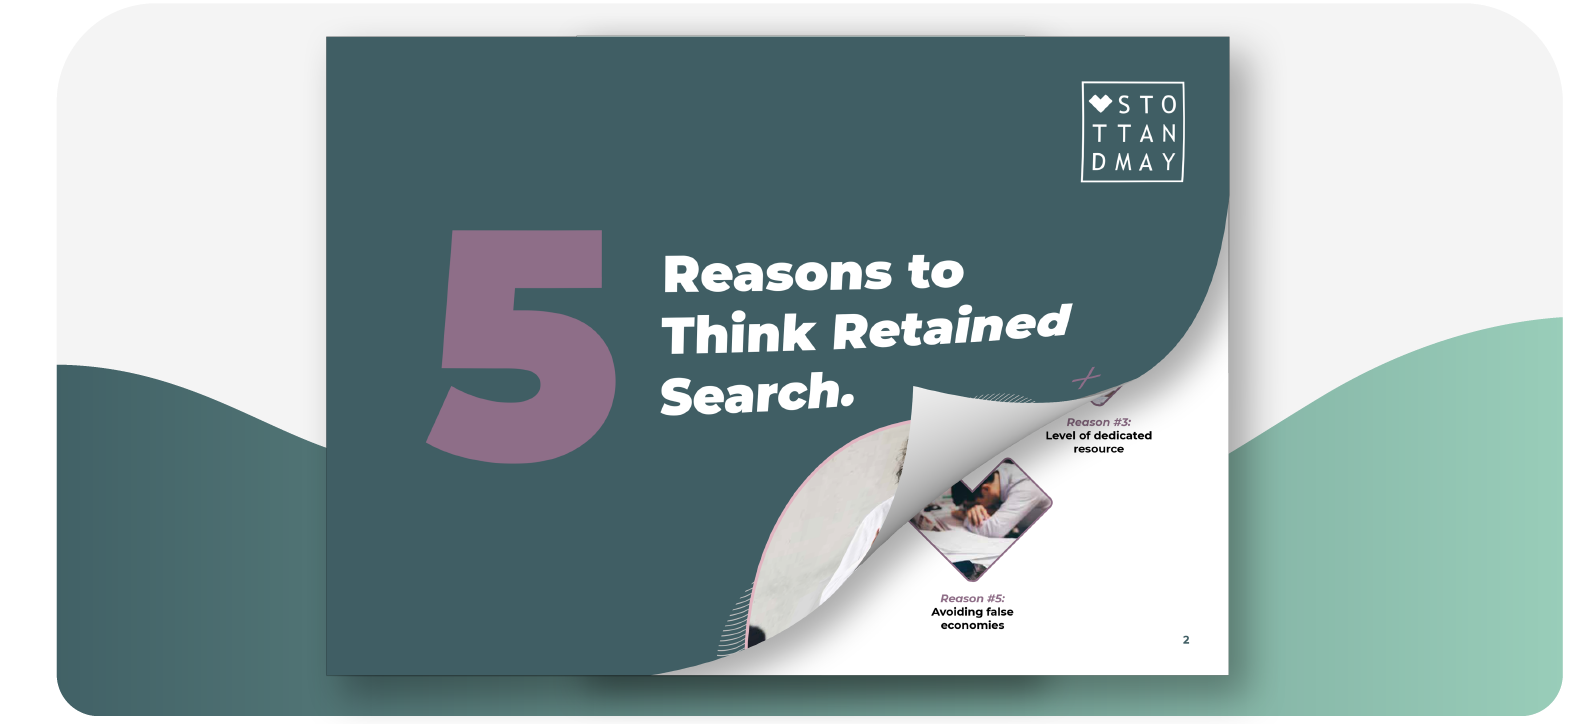 Stott and May 5 Reasons to Think Retained Search Guide